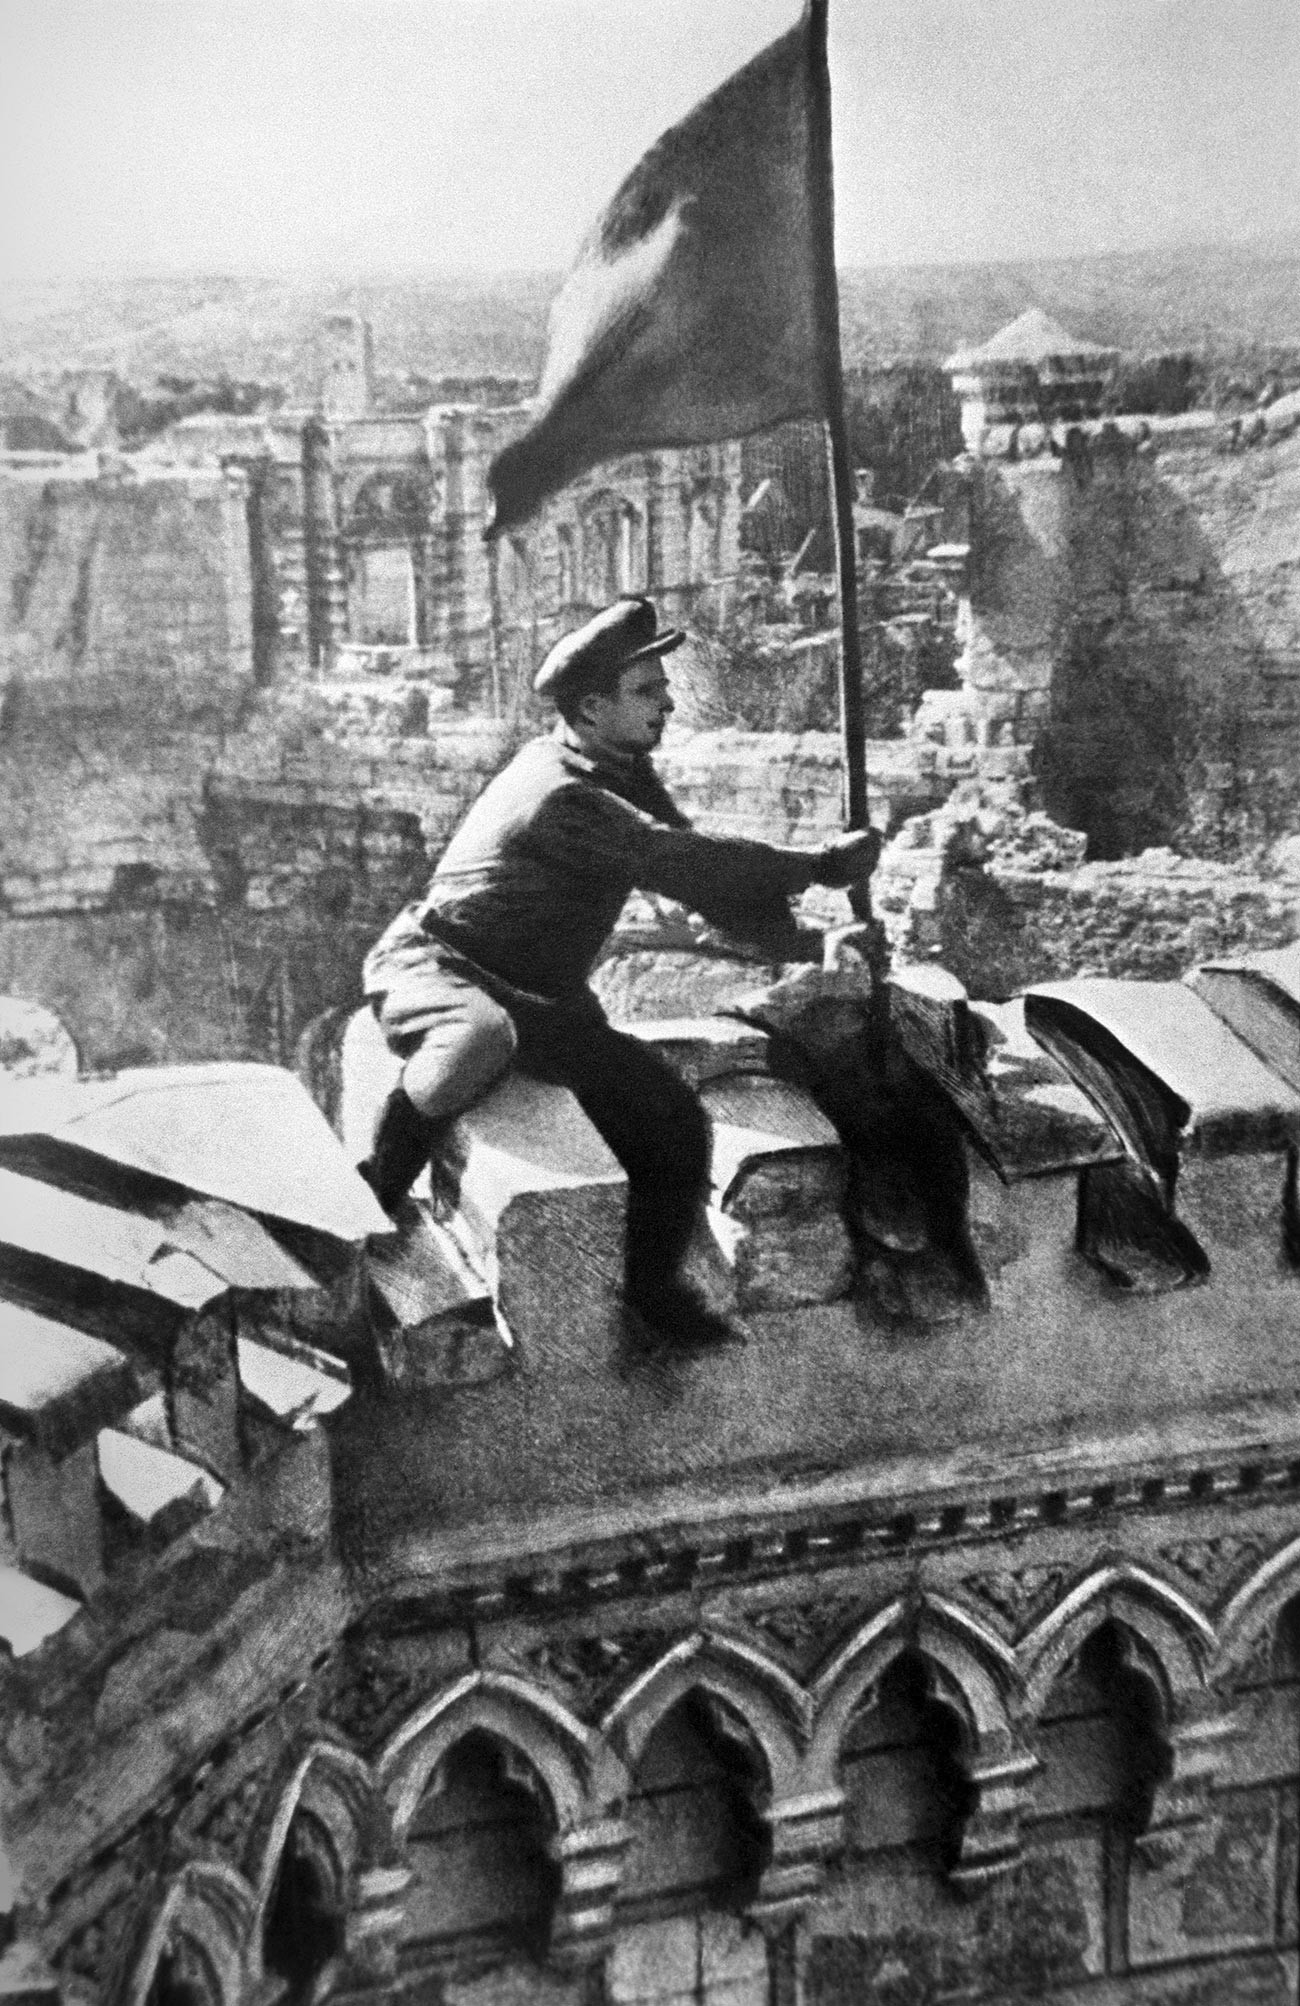 Raising the Banner of Victory over liberated Chisinau, 1944